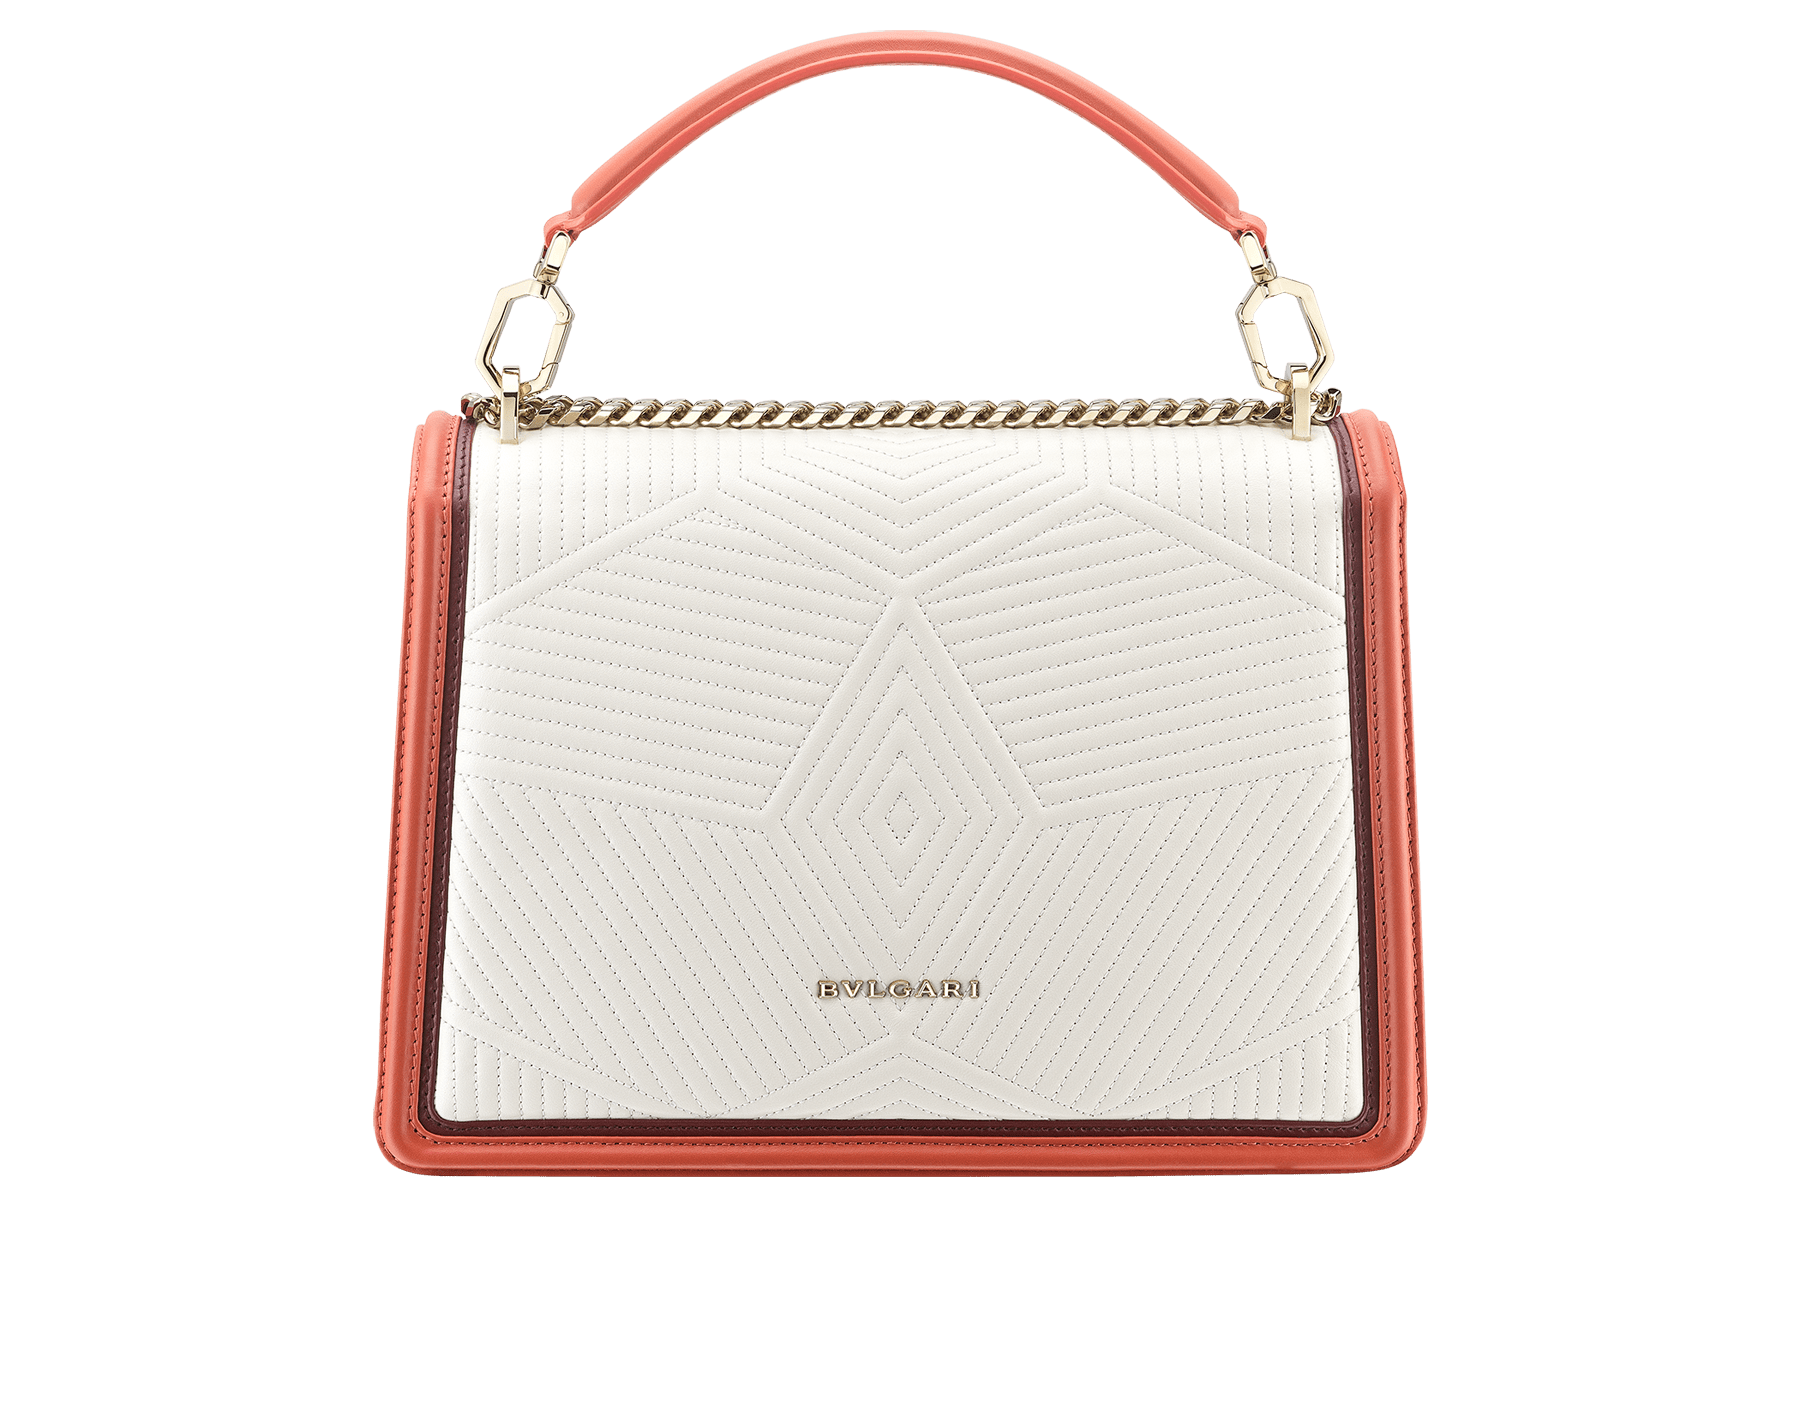 Top handle bag Serpenti Forever featuring a Framed Quilted motif in roman garnet nappa and black smooth calf leather. Brass light gold plated tempting snake head closure in black and white enamel, with eyes in black onyx. 973-FQDc image 4